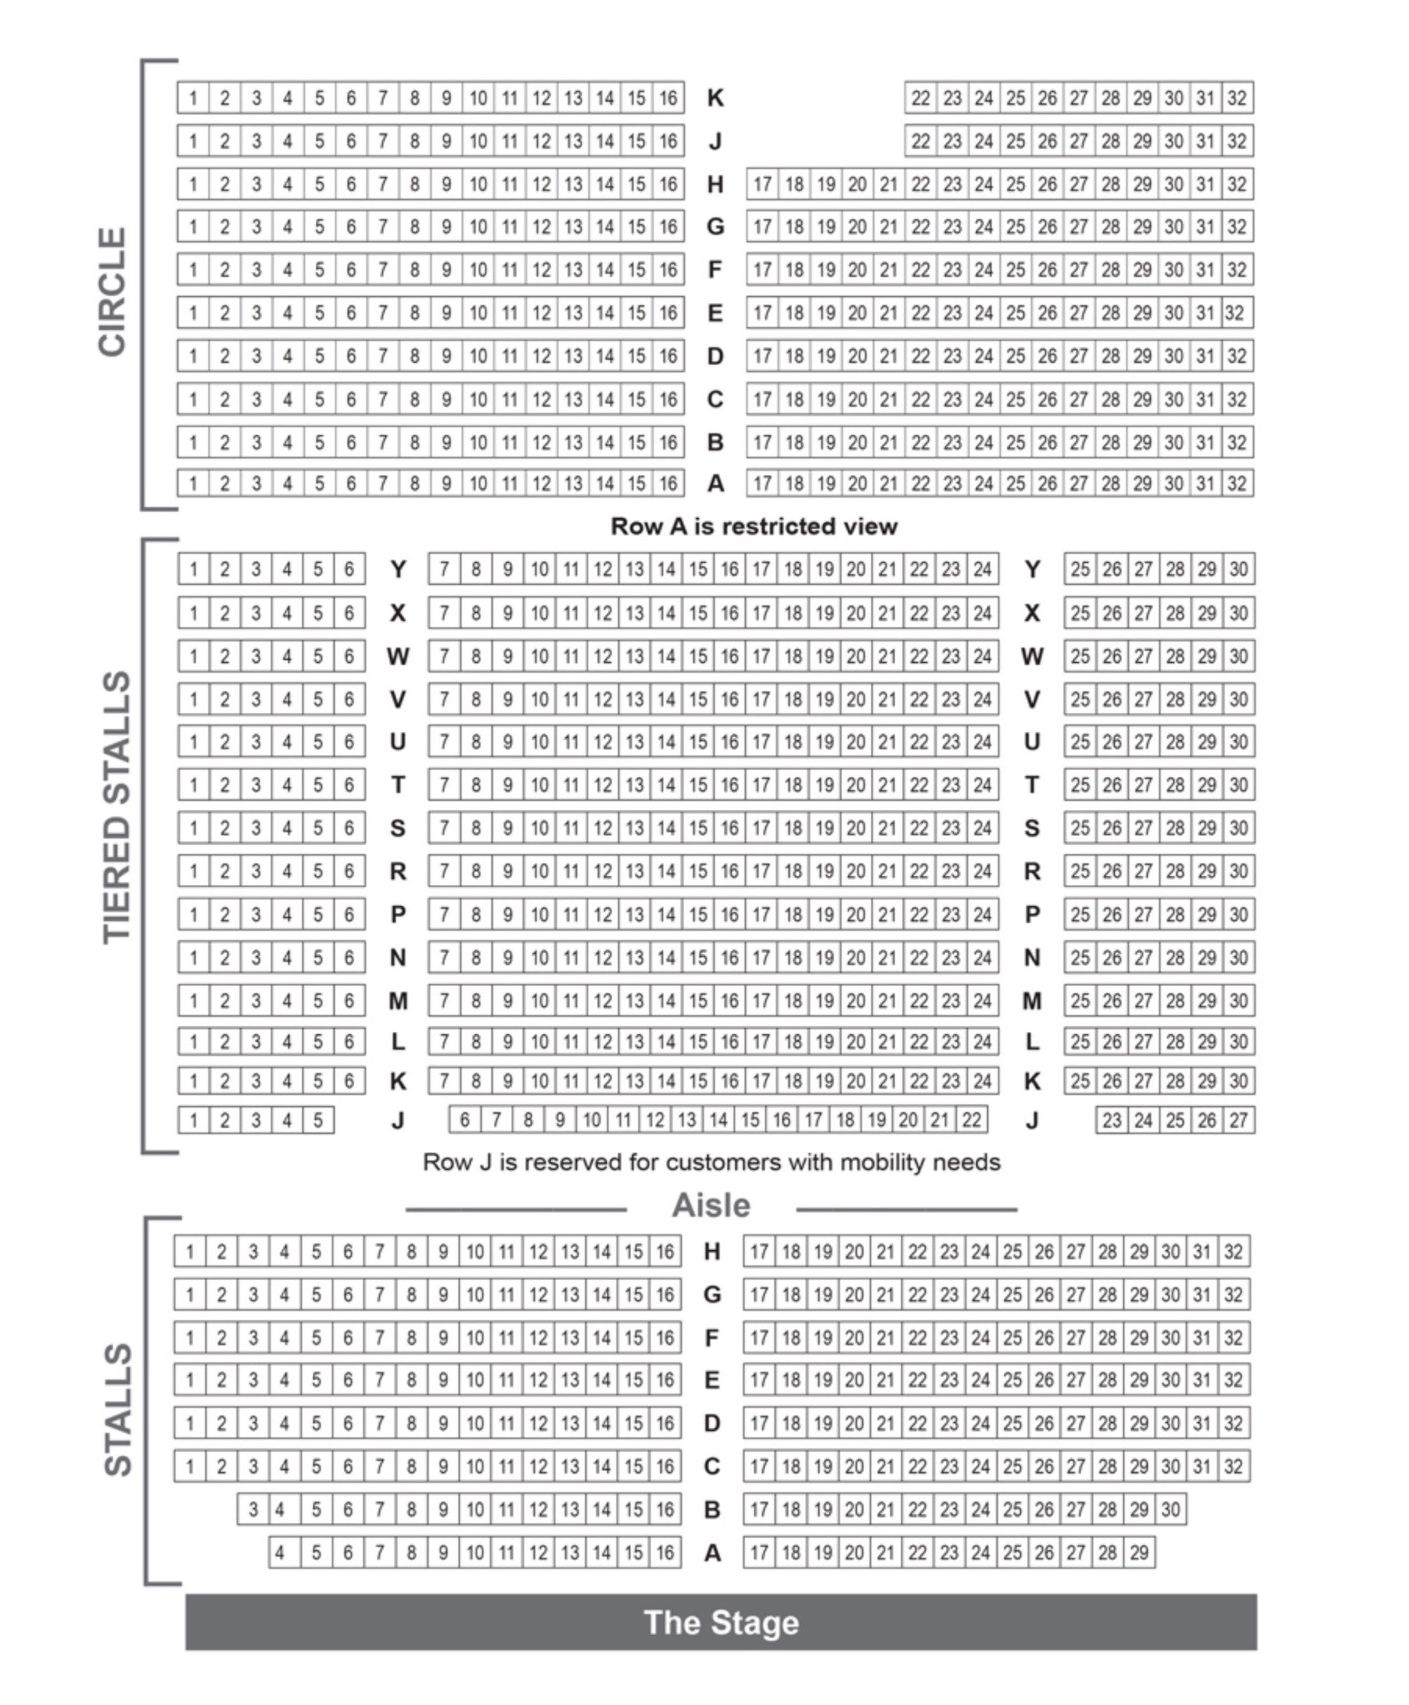 Assembly Hall seating plan